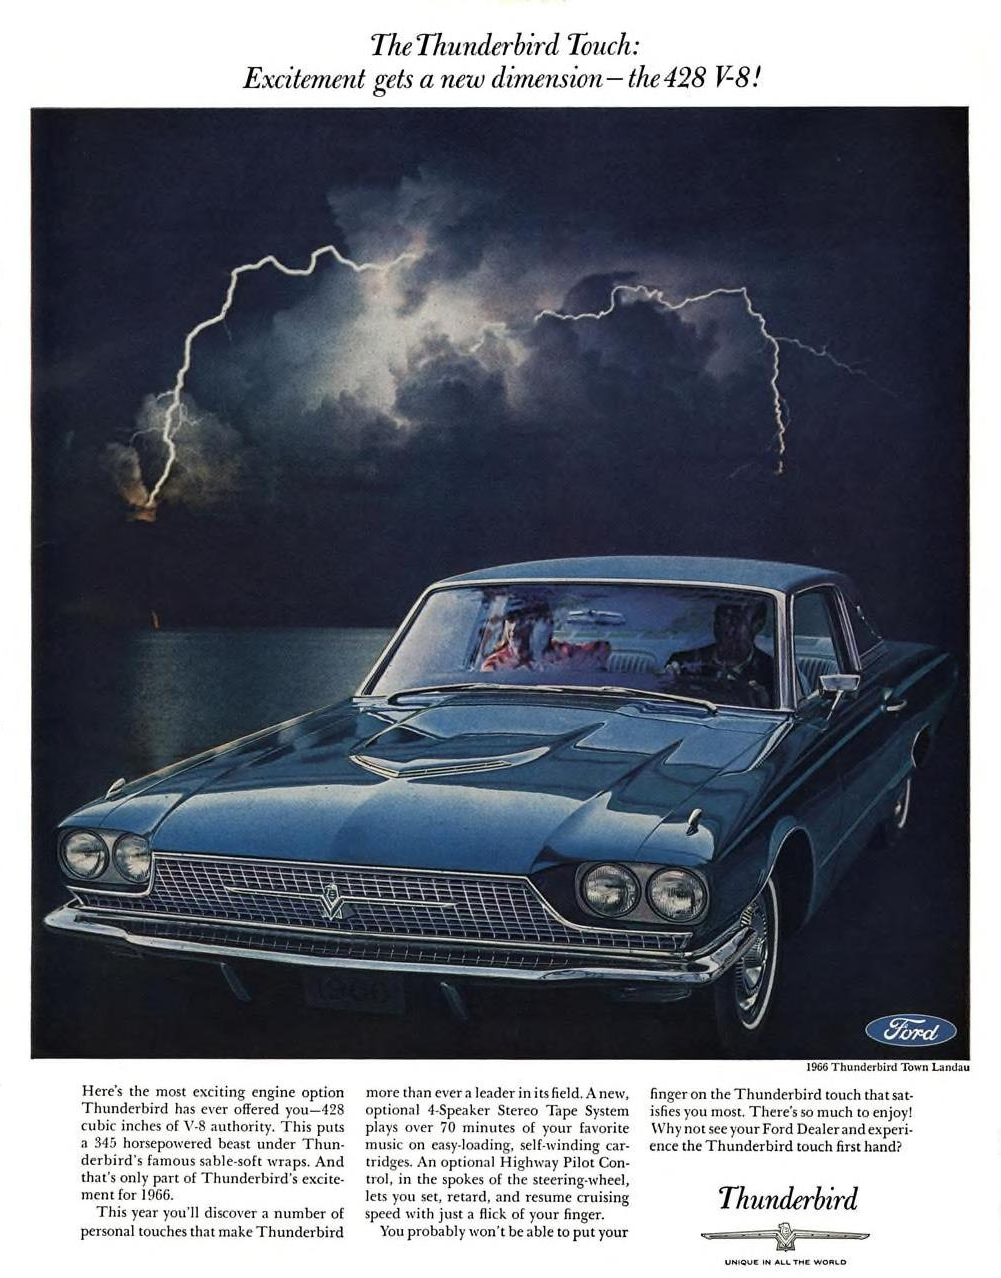 1966 Ford Thunderbird Town Landau - published in Esquire - March 1966